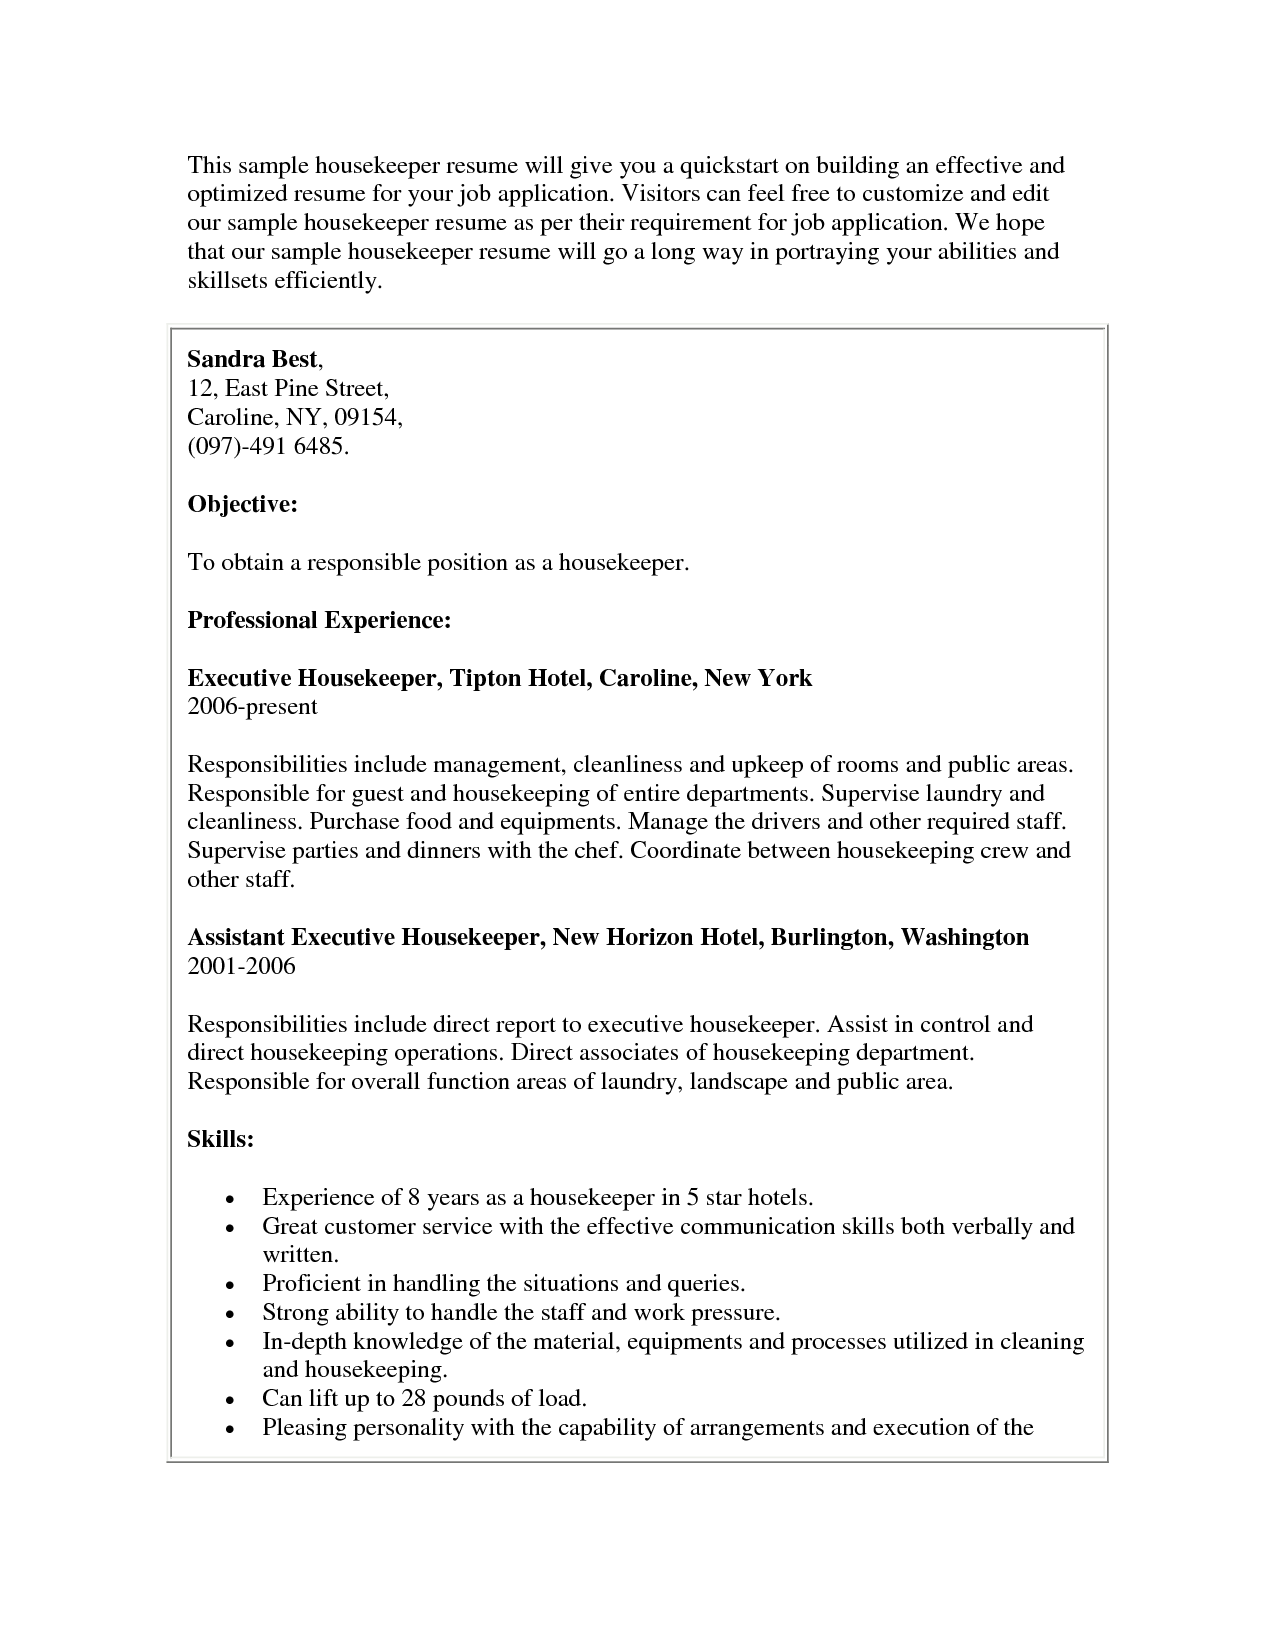 Housekeeper Sample Housekeeping Resume Cover Letter Job  Home